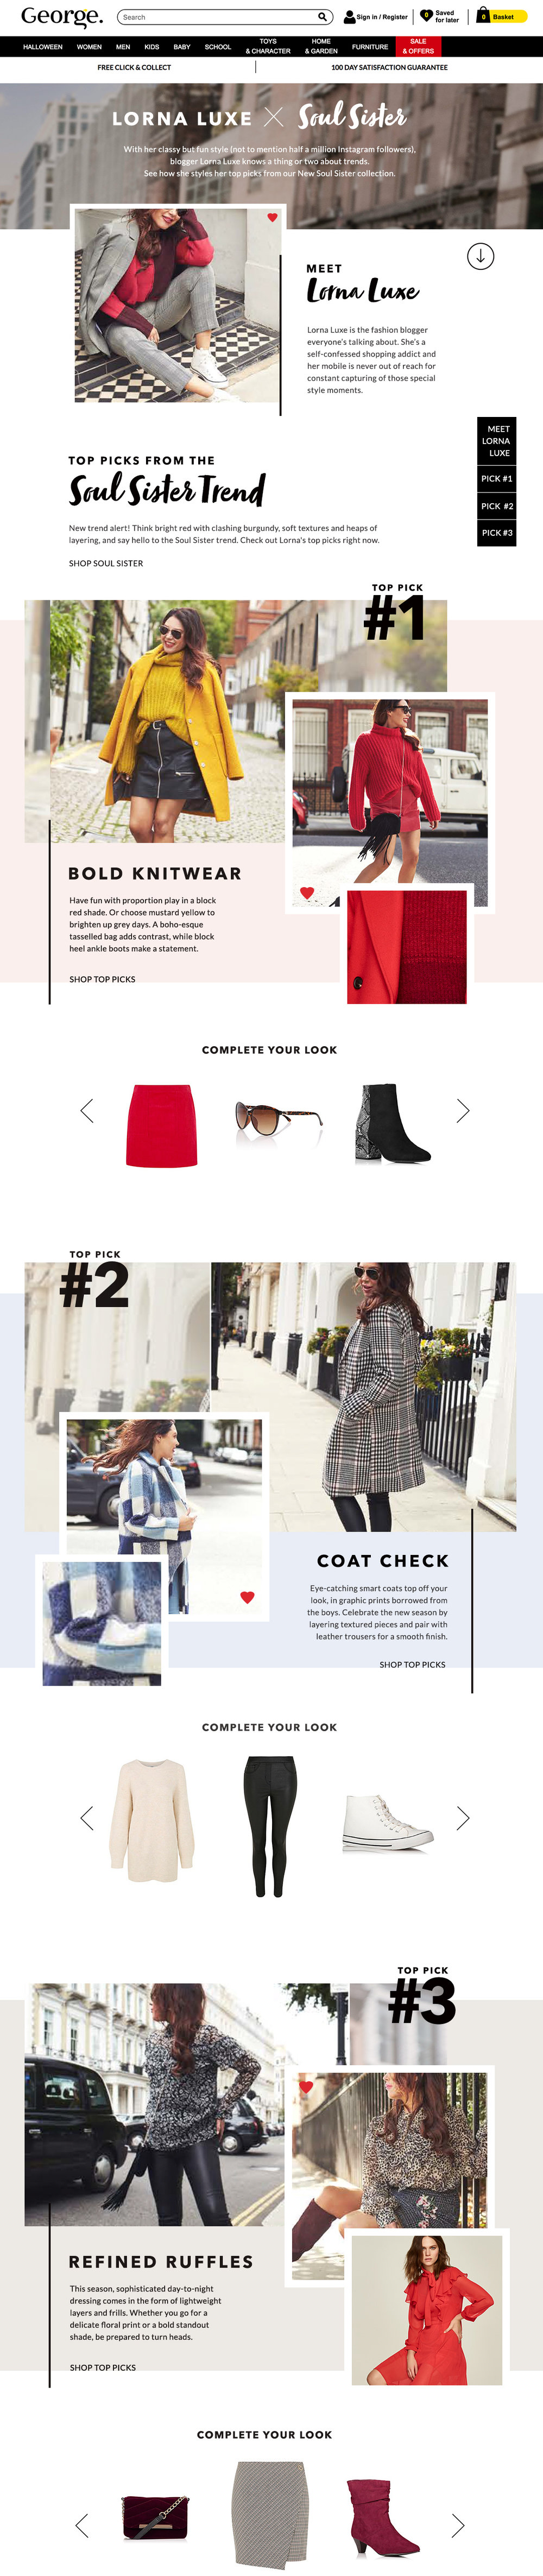 George at ASDA x Lorna Luxe email